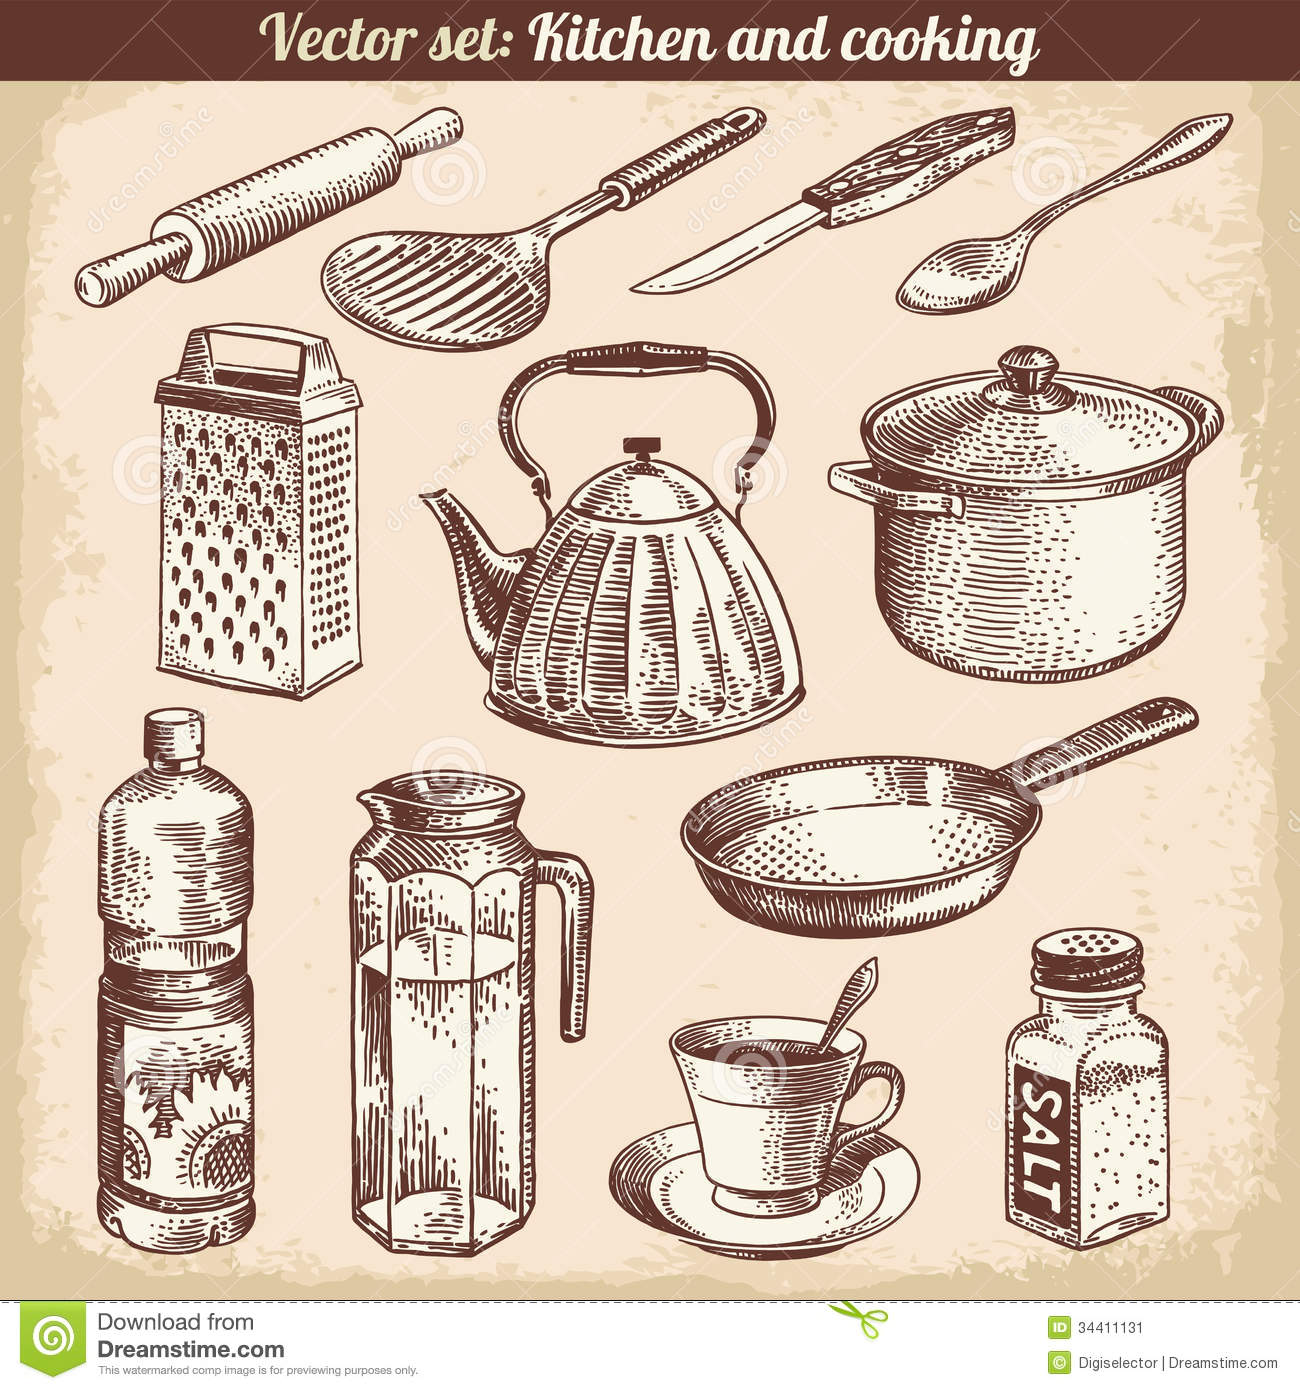 Retro Kitchen Illustration: Kitchen And Cooking Set Vector Stock Image